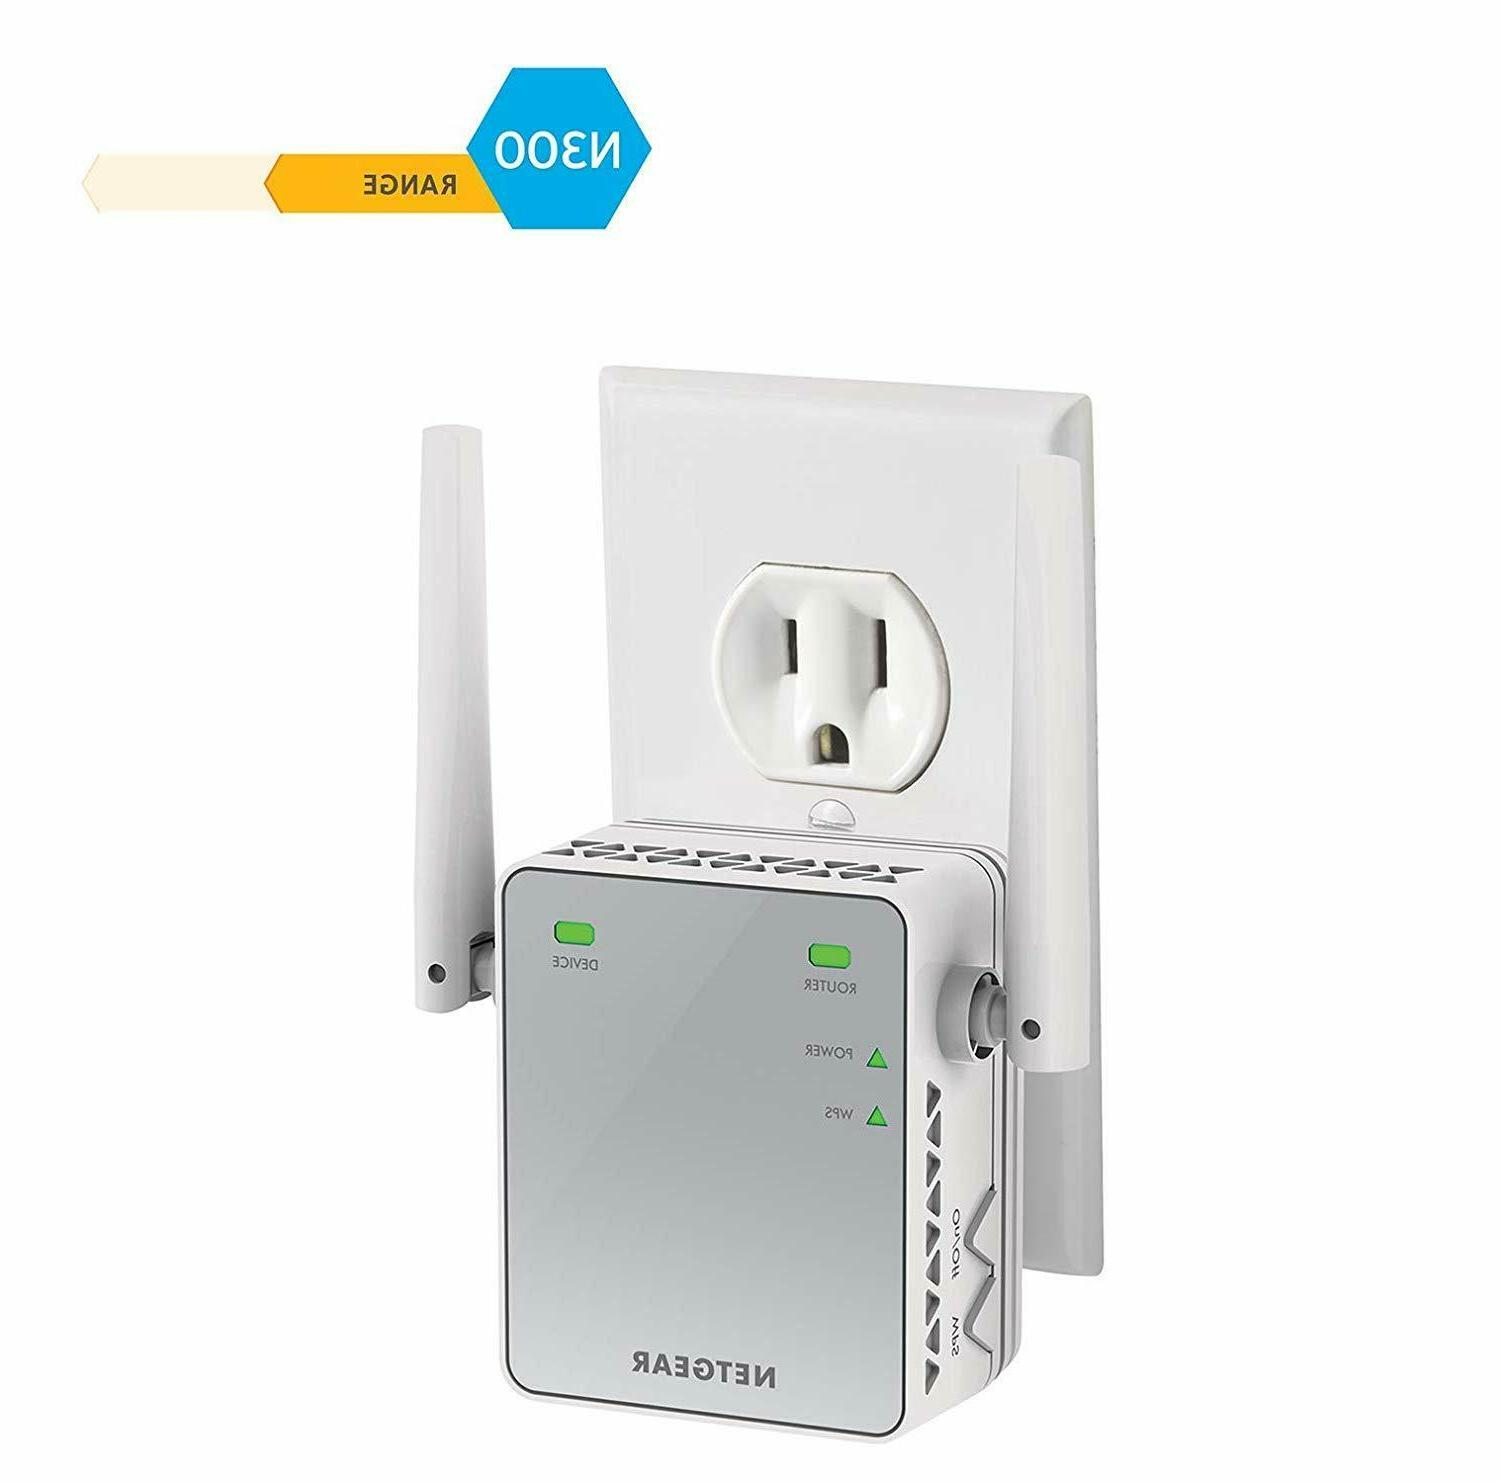 NETGEAR WiFi Network Range Extender Wireless Repeater Booster